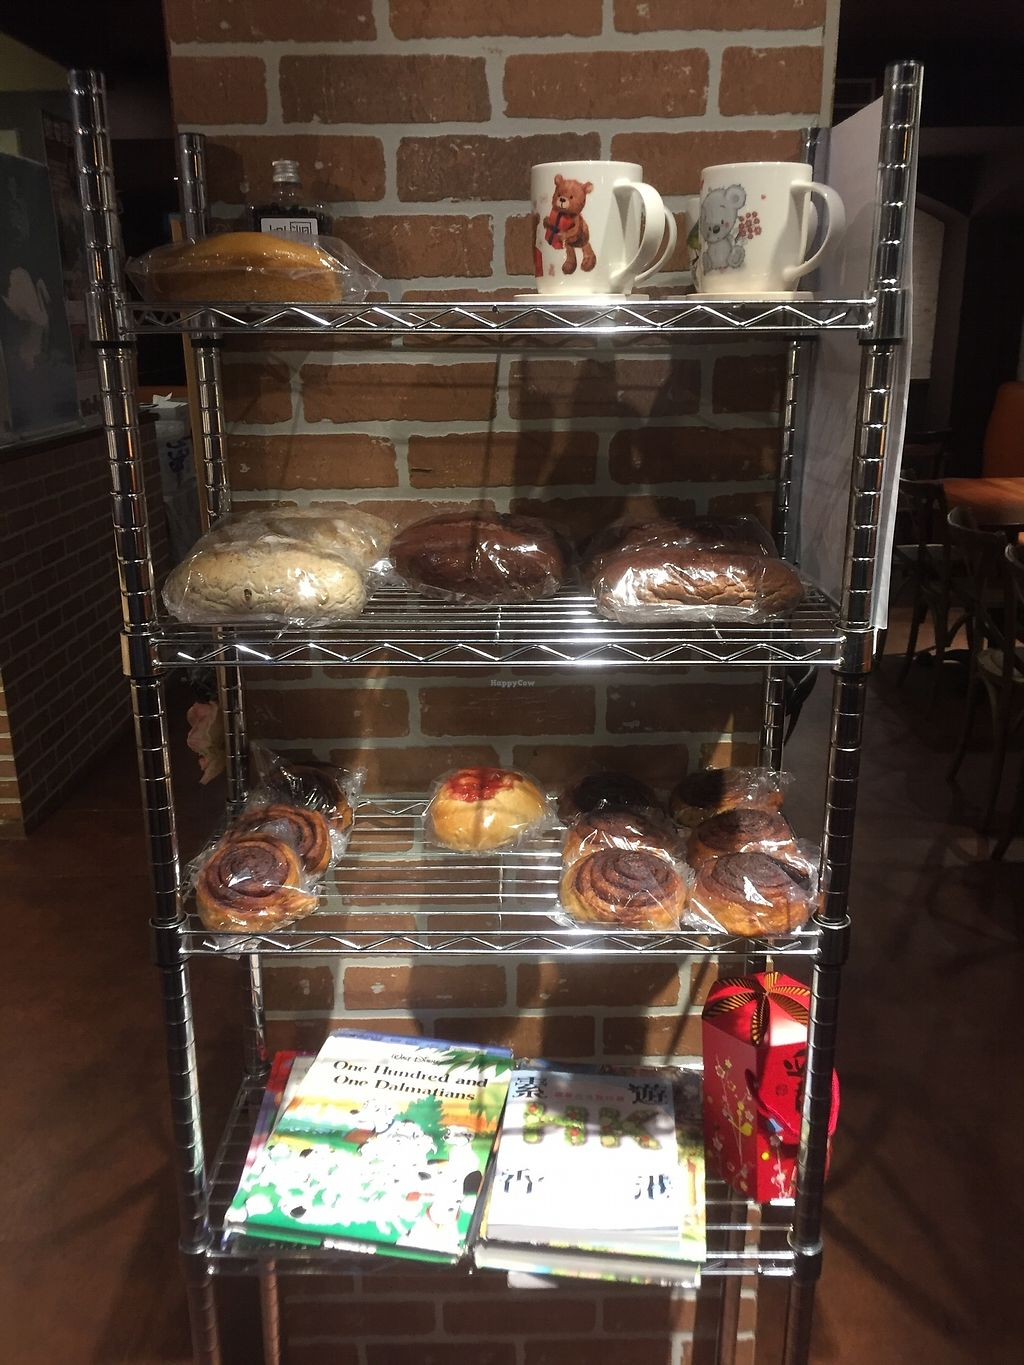 """Photo of Fresh Bakery & Cafe - Vegan Taipei  by <a href=""""/members/profile/Pons"""">Pons</a> <br/>Still some baked goods <br/> April 3, 2018  - <a href='/contact/abuse/image/37227/380197'>Report</a>"""